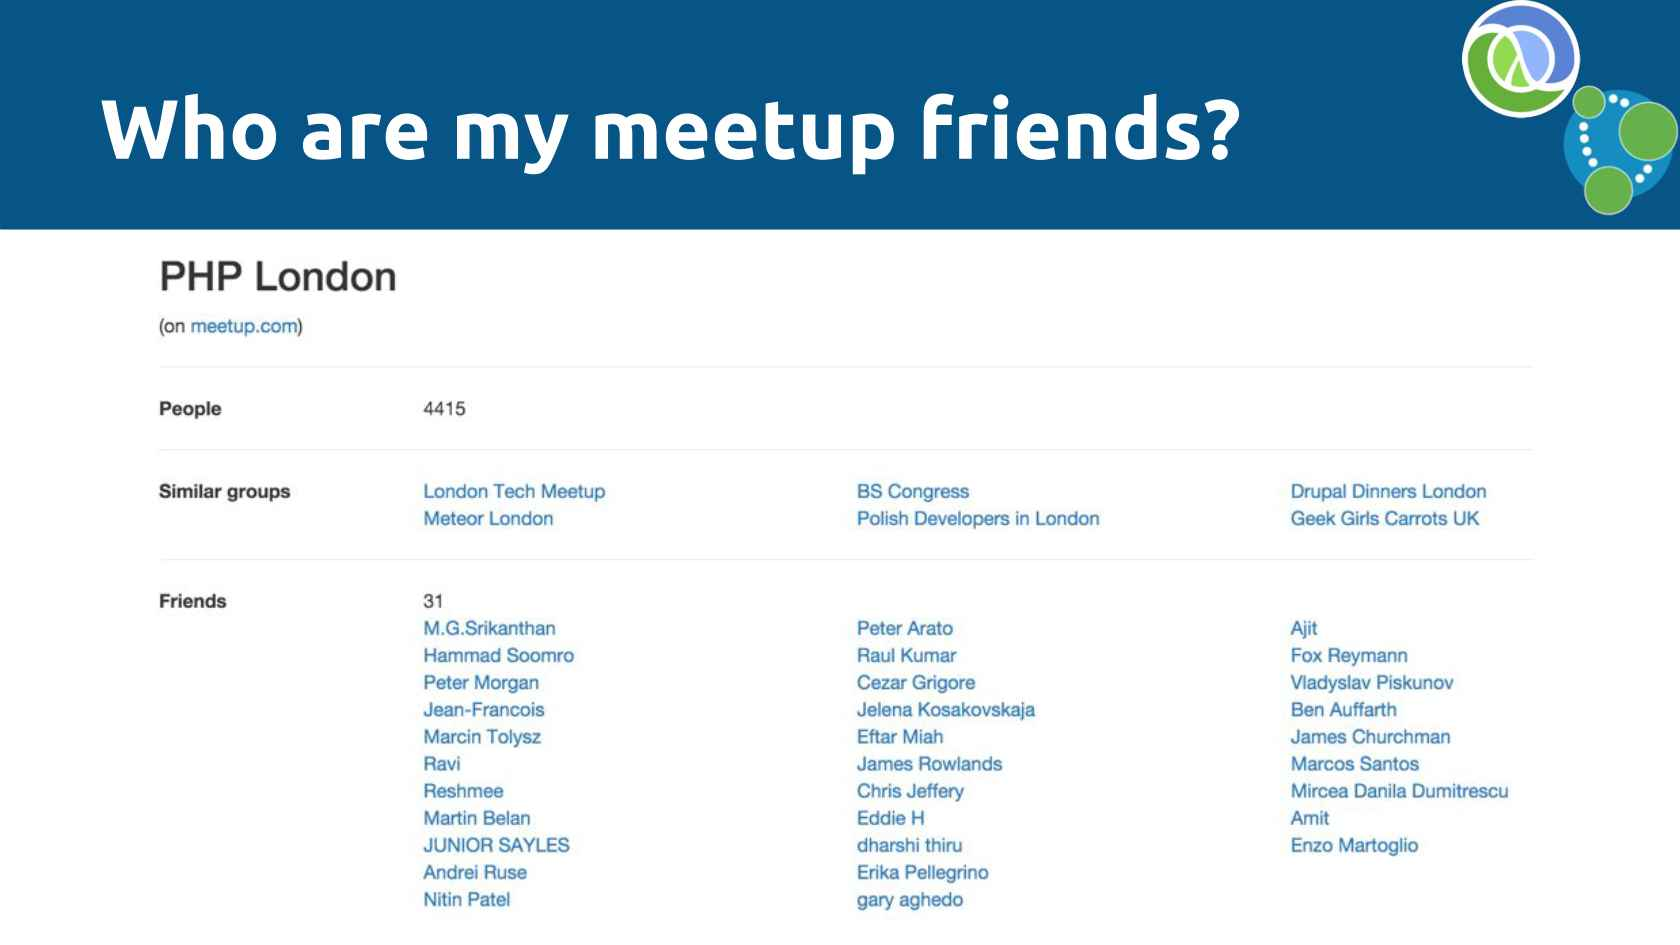 Using Clojure and Neo4j to Build a Meetup Recommendation Engine